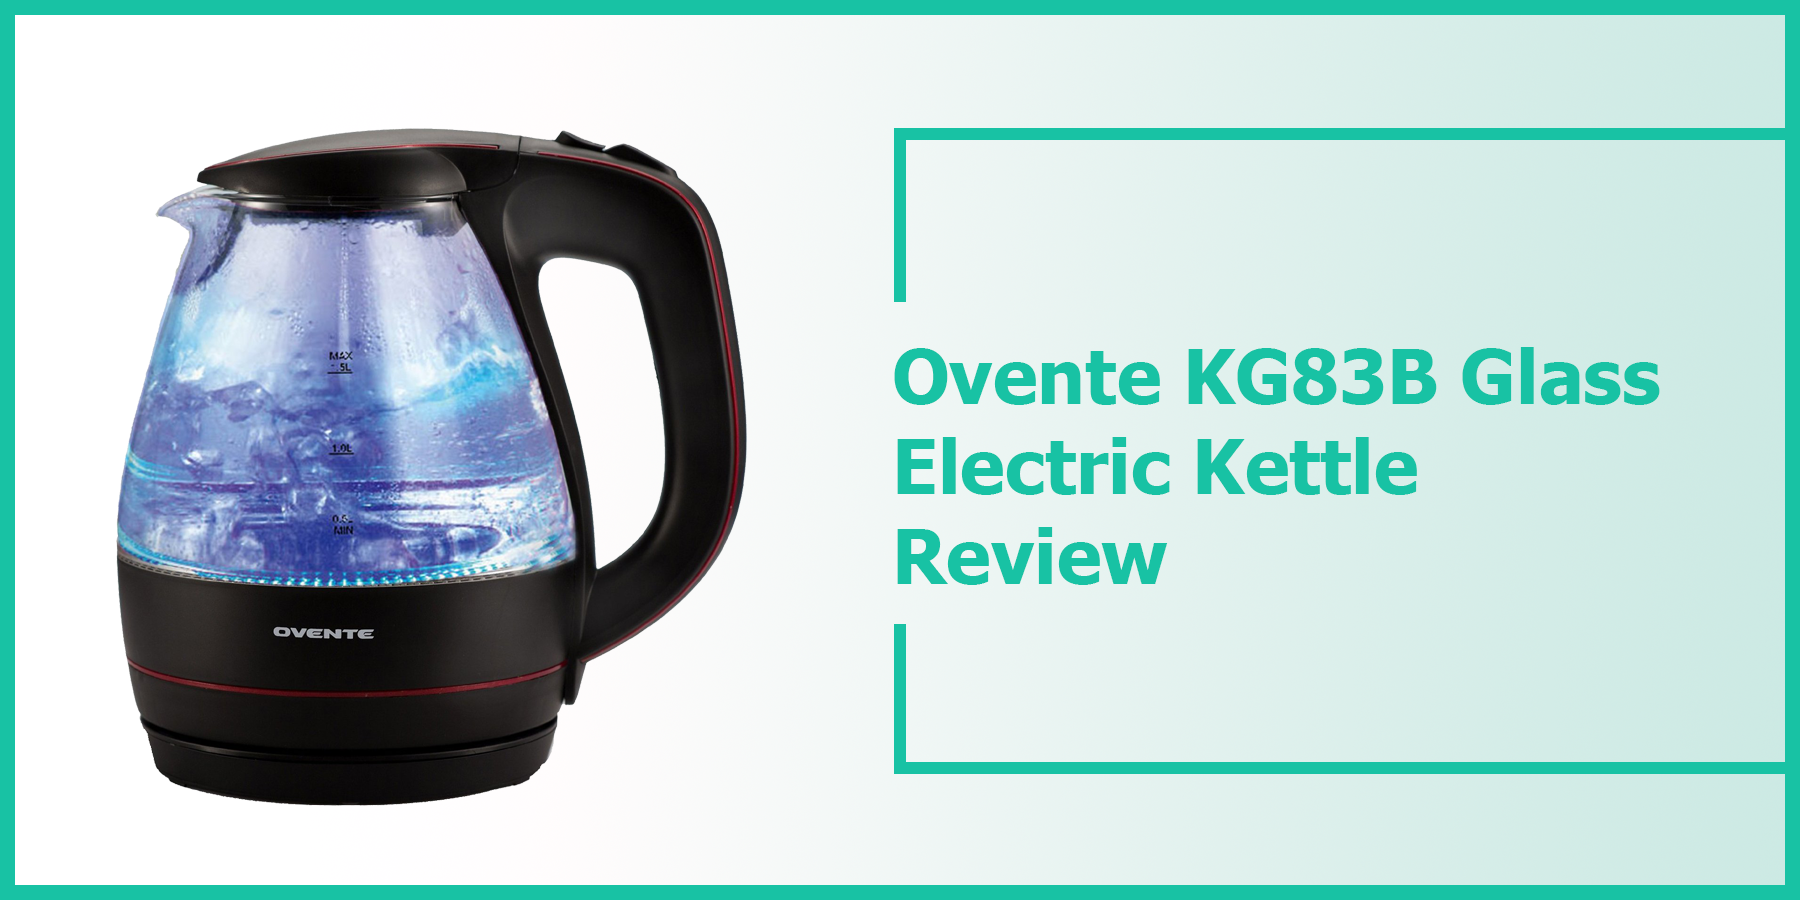 Ovente KG83B Glass Electric Kettle Review